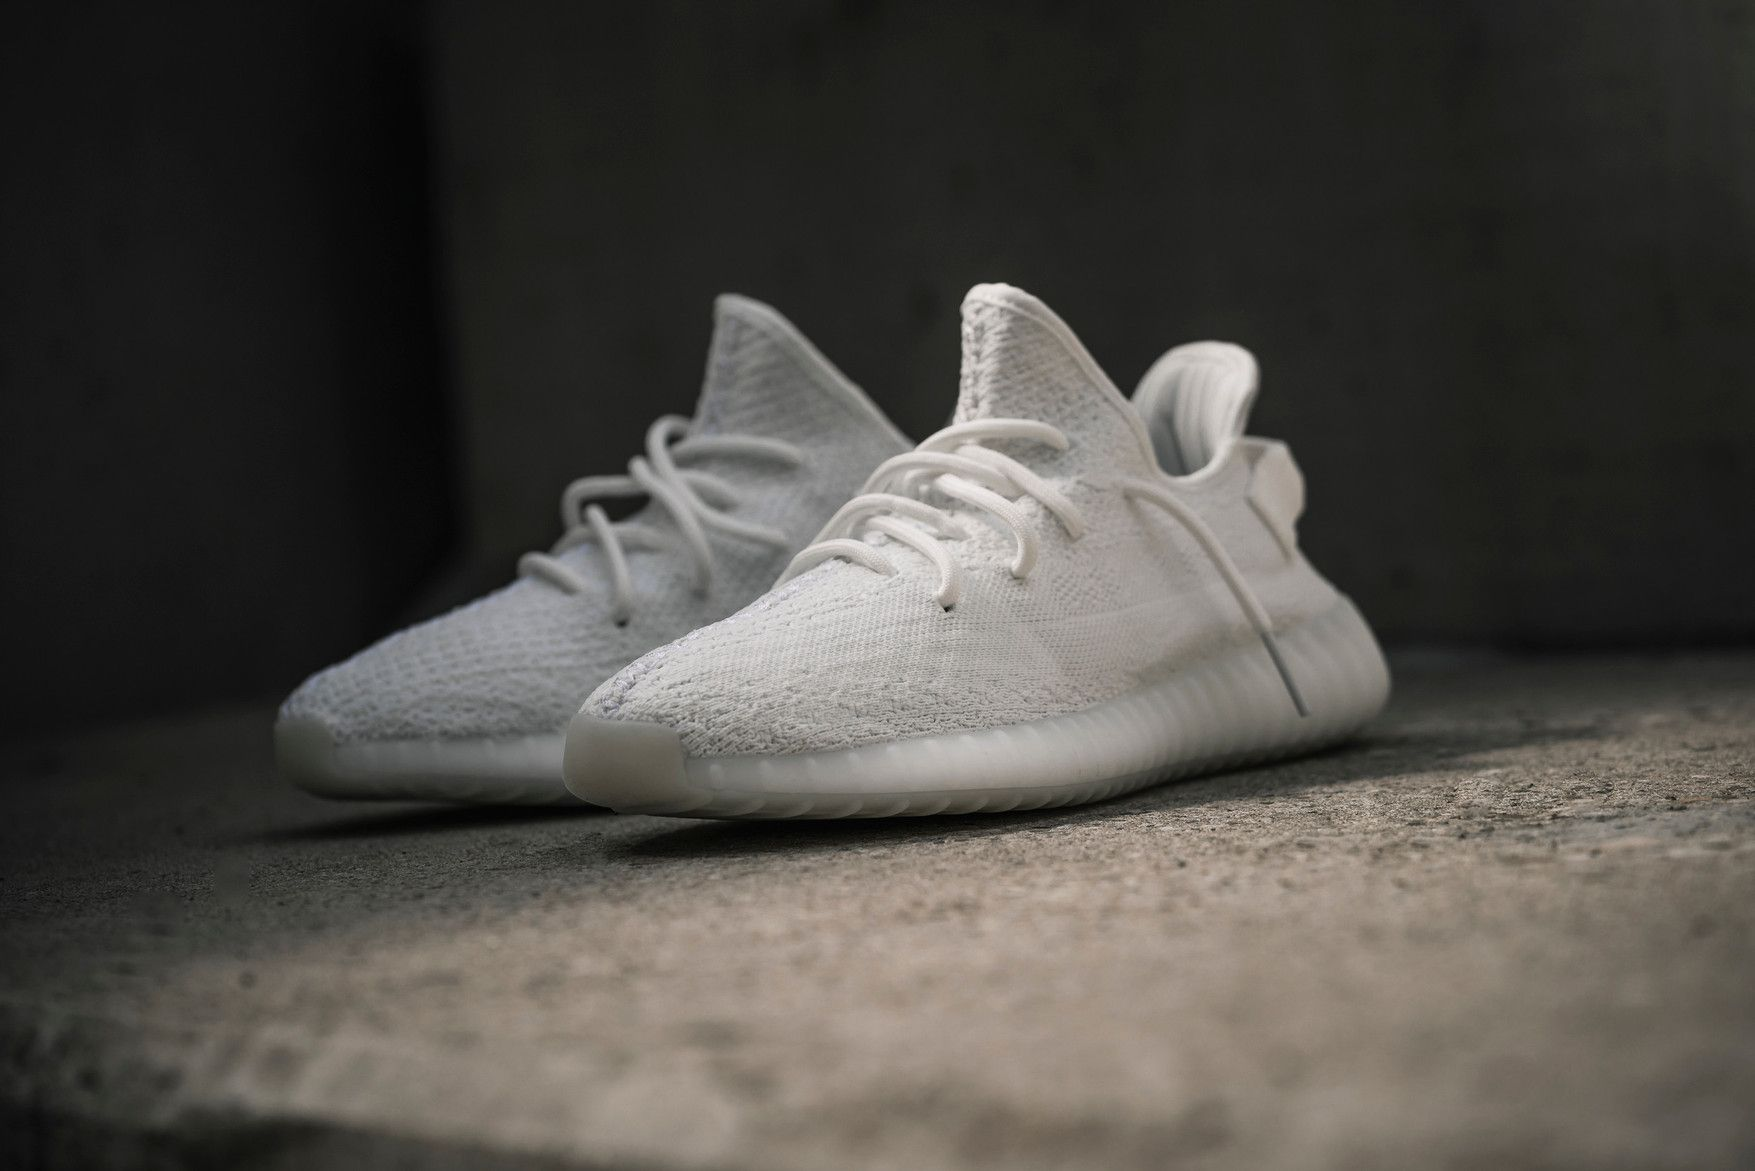 a4cfebac40e37 adidas Originals YEEZY BOOST 350 V2「Triple White」配色下月確認回歸 ...